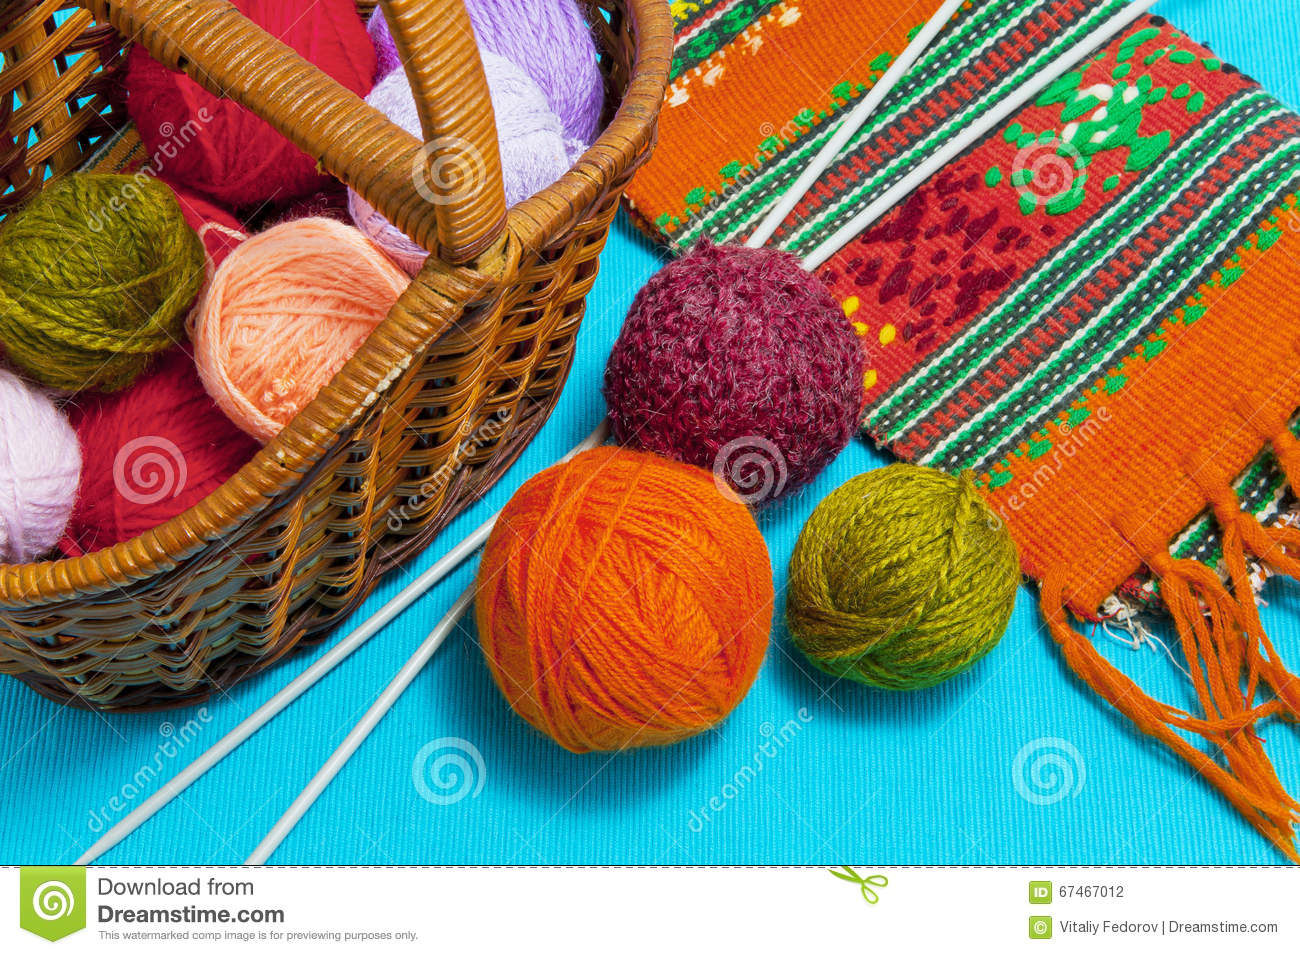 Basket with balls of wool and knitting needles on a blue background